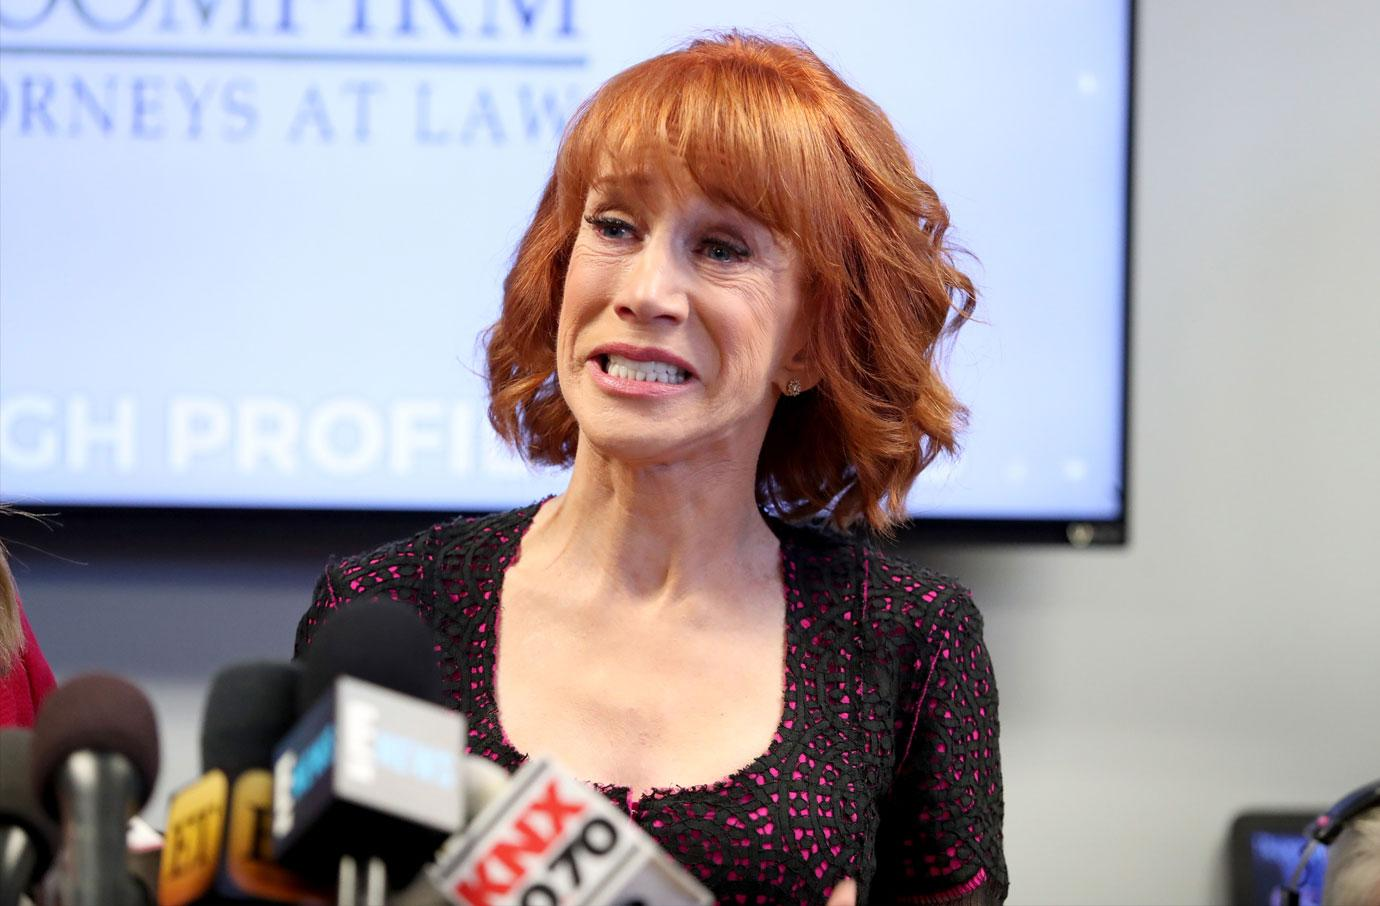 Kathy Griffin Donald Trump Photo Press Conference